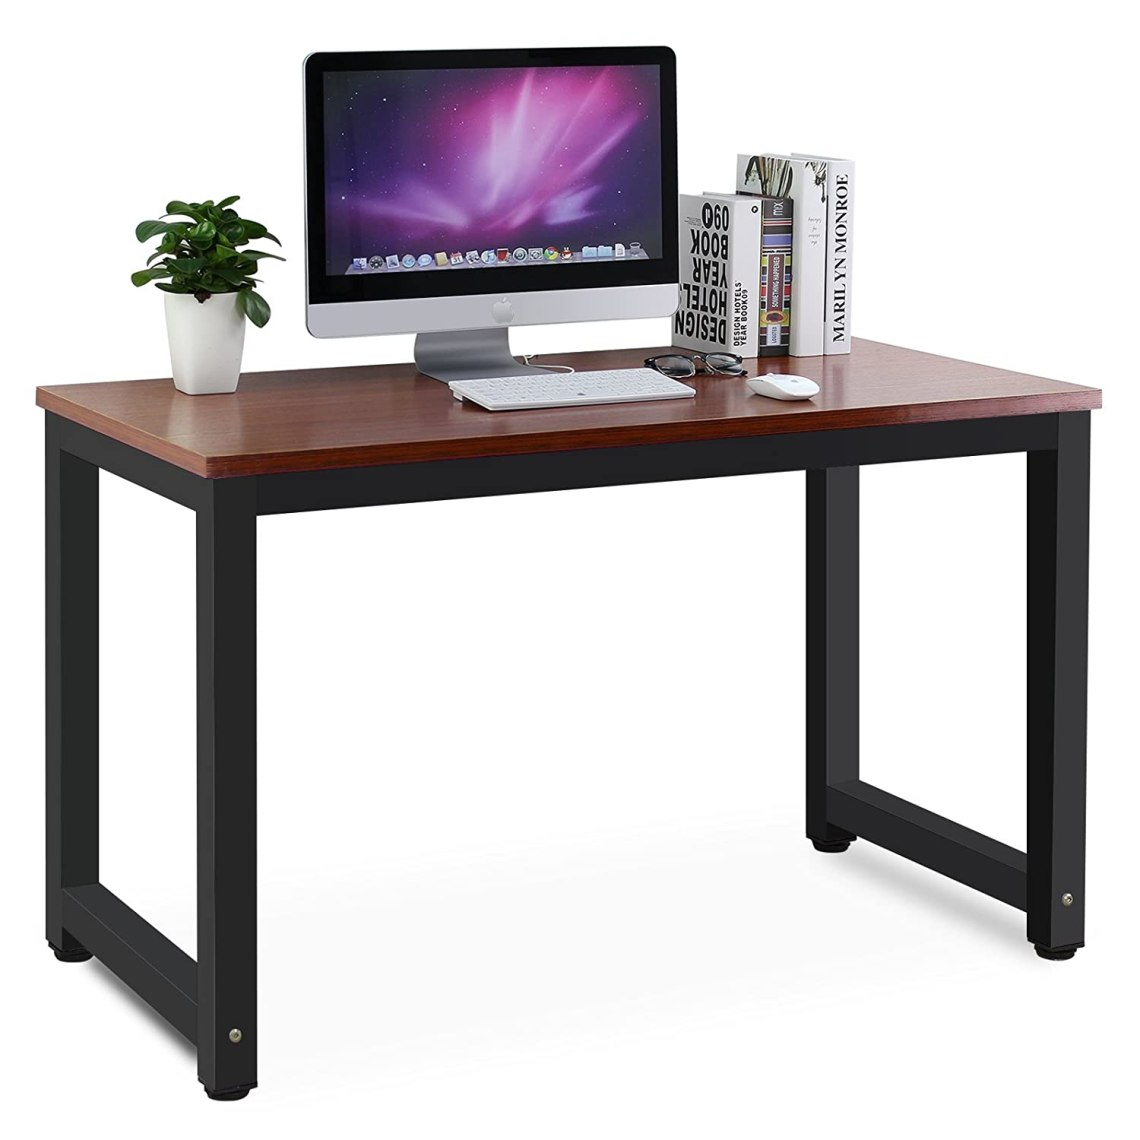 title | Home Office Computer Desk